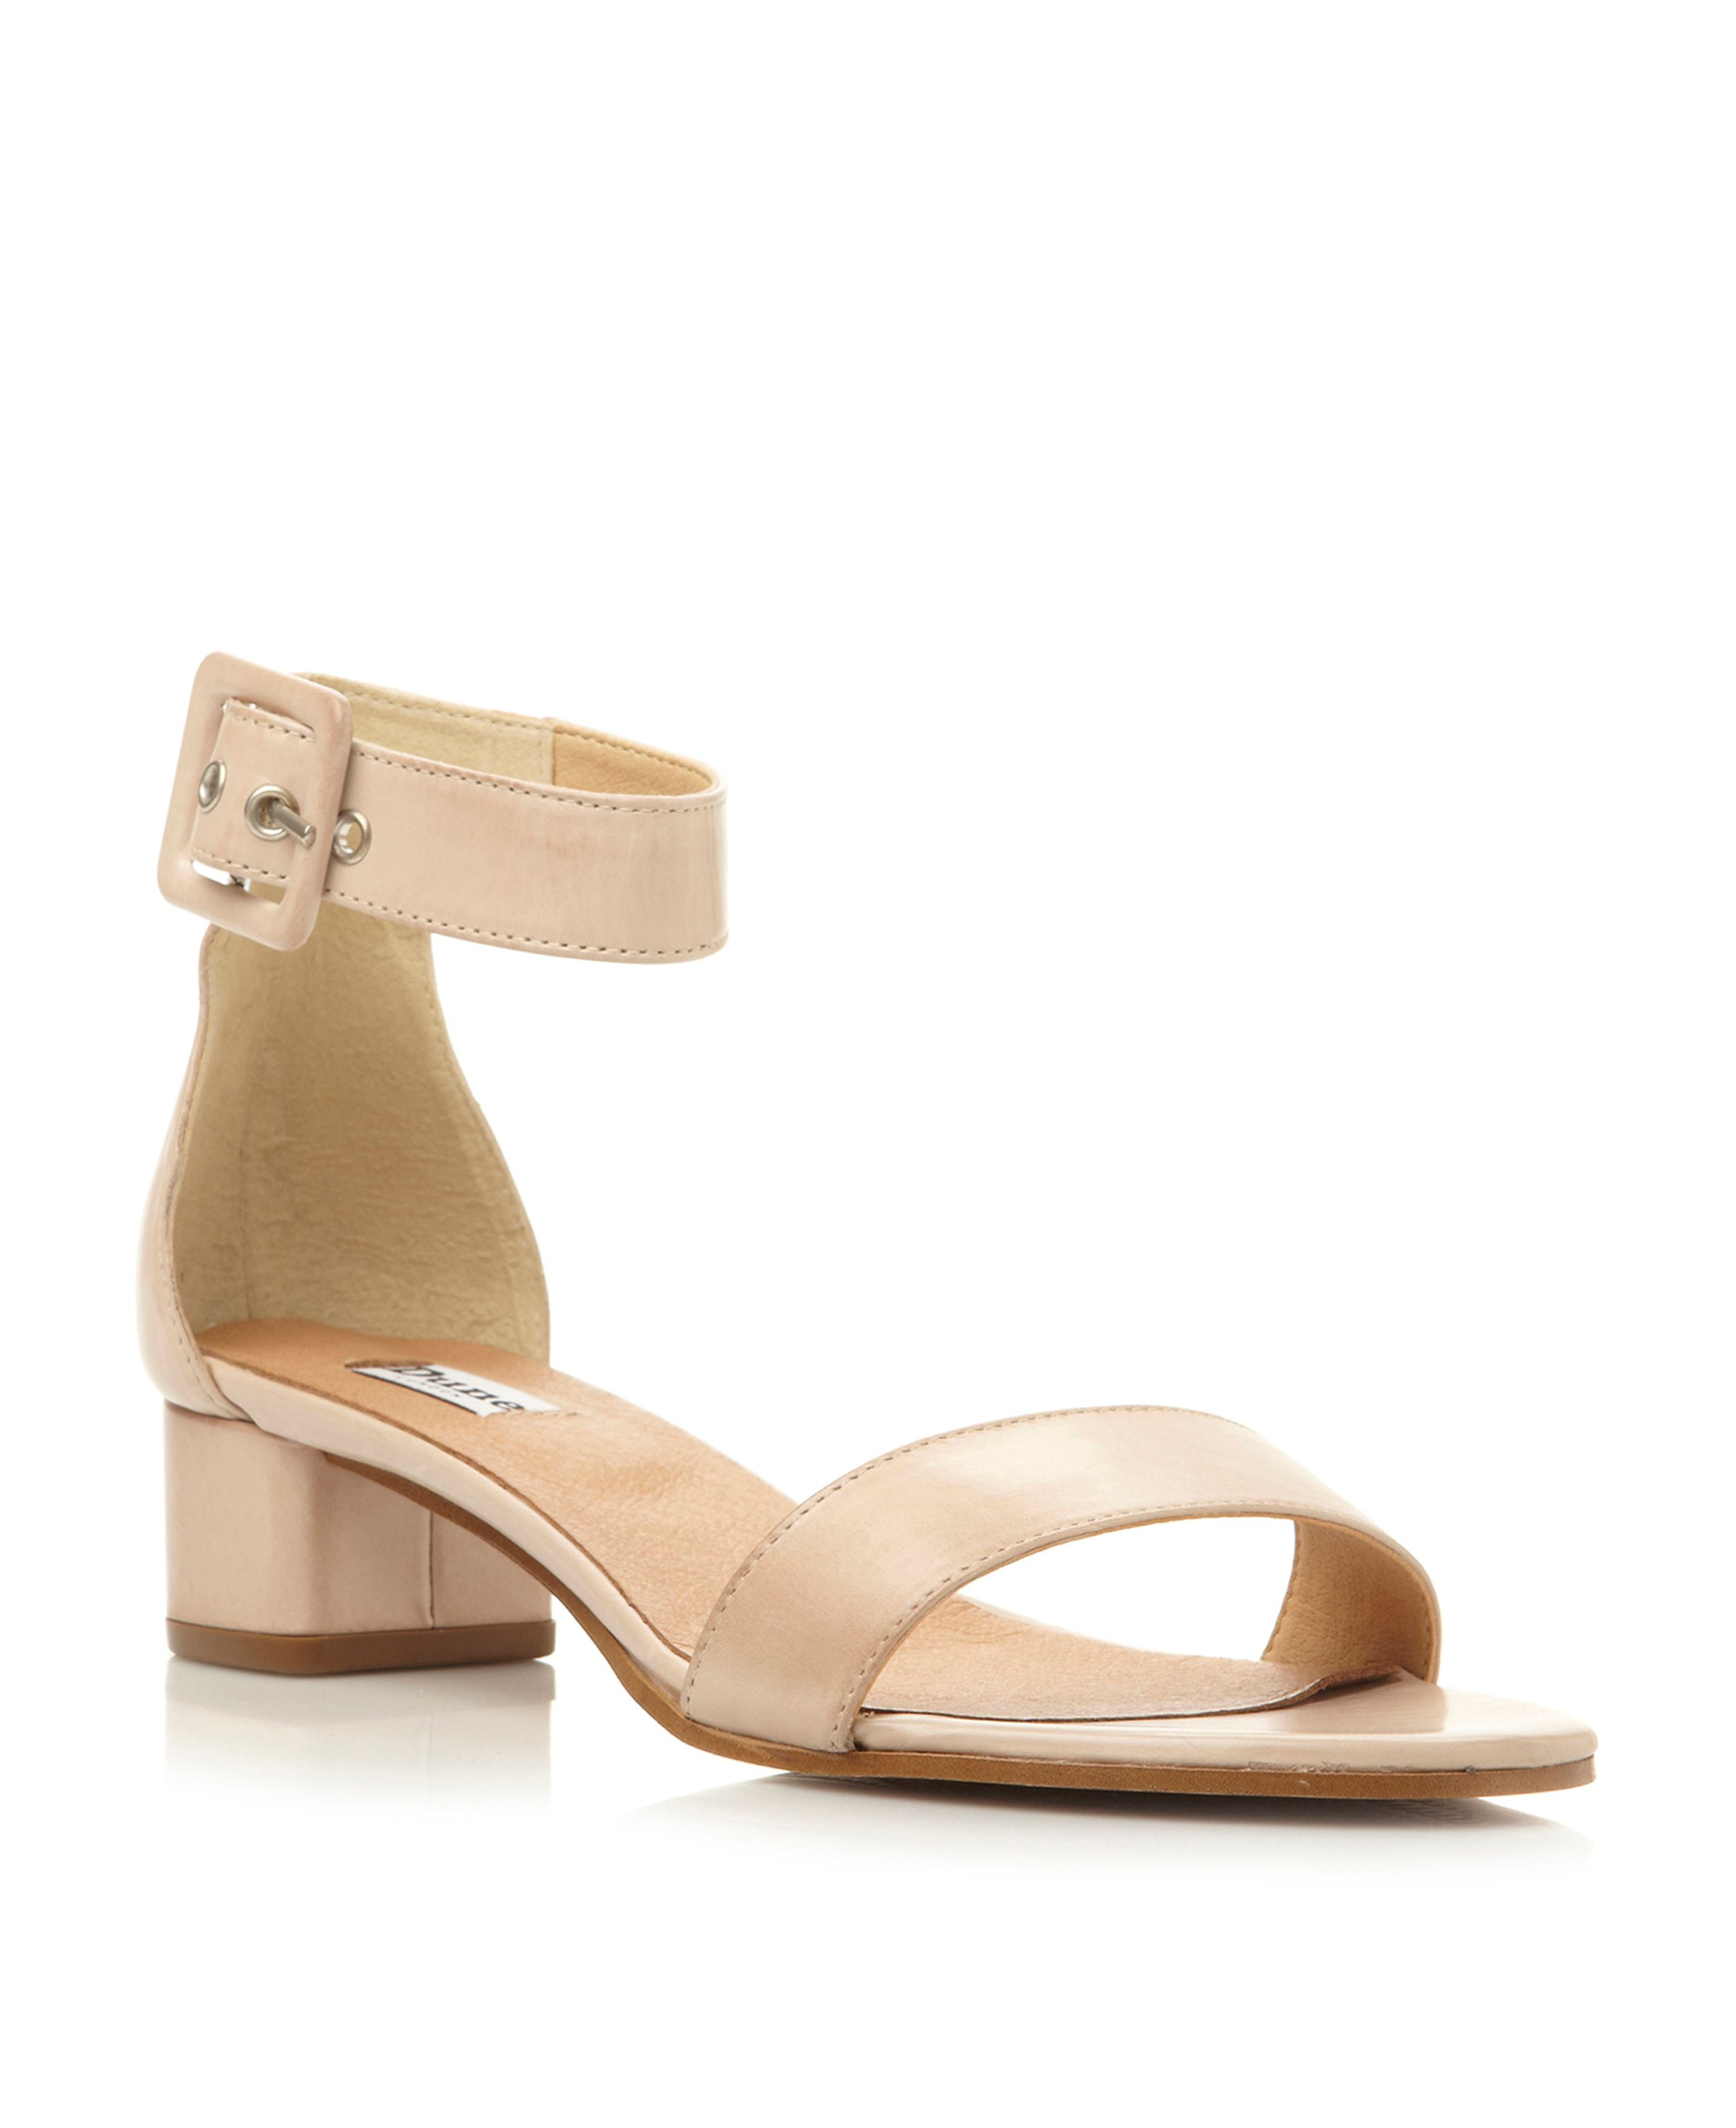 Fran leather block heel two part sandals